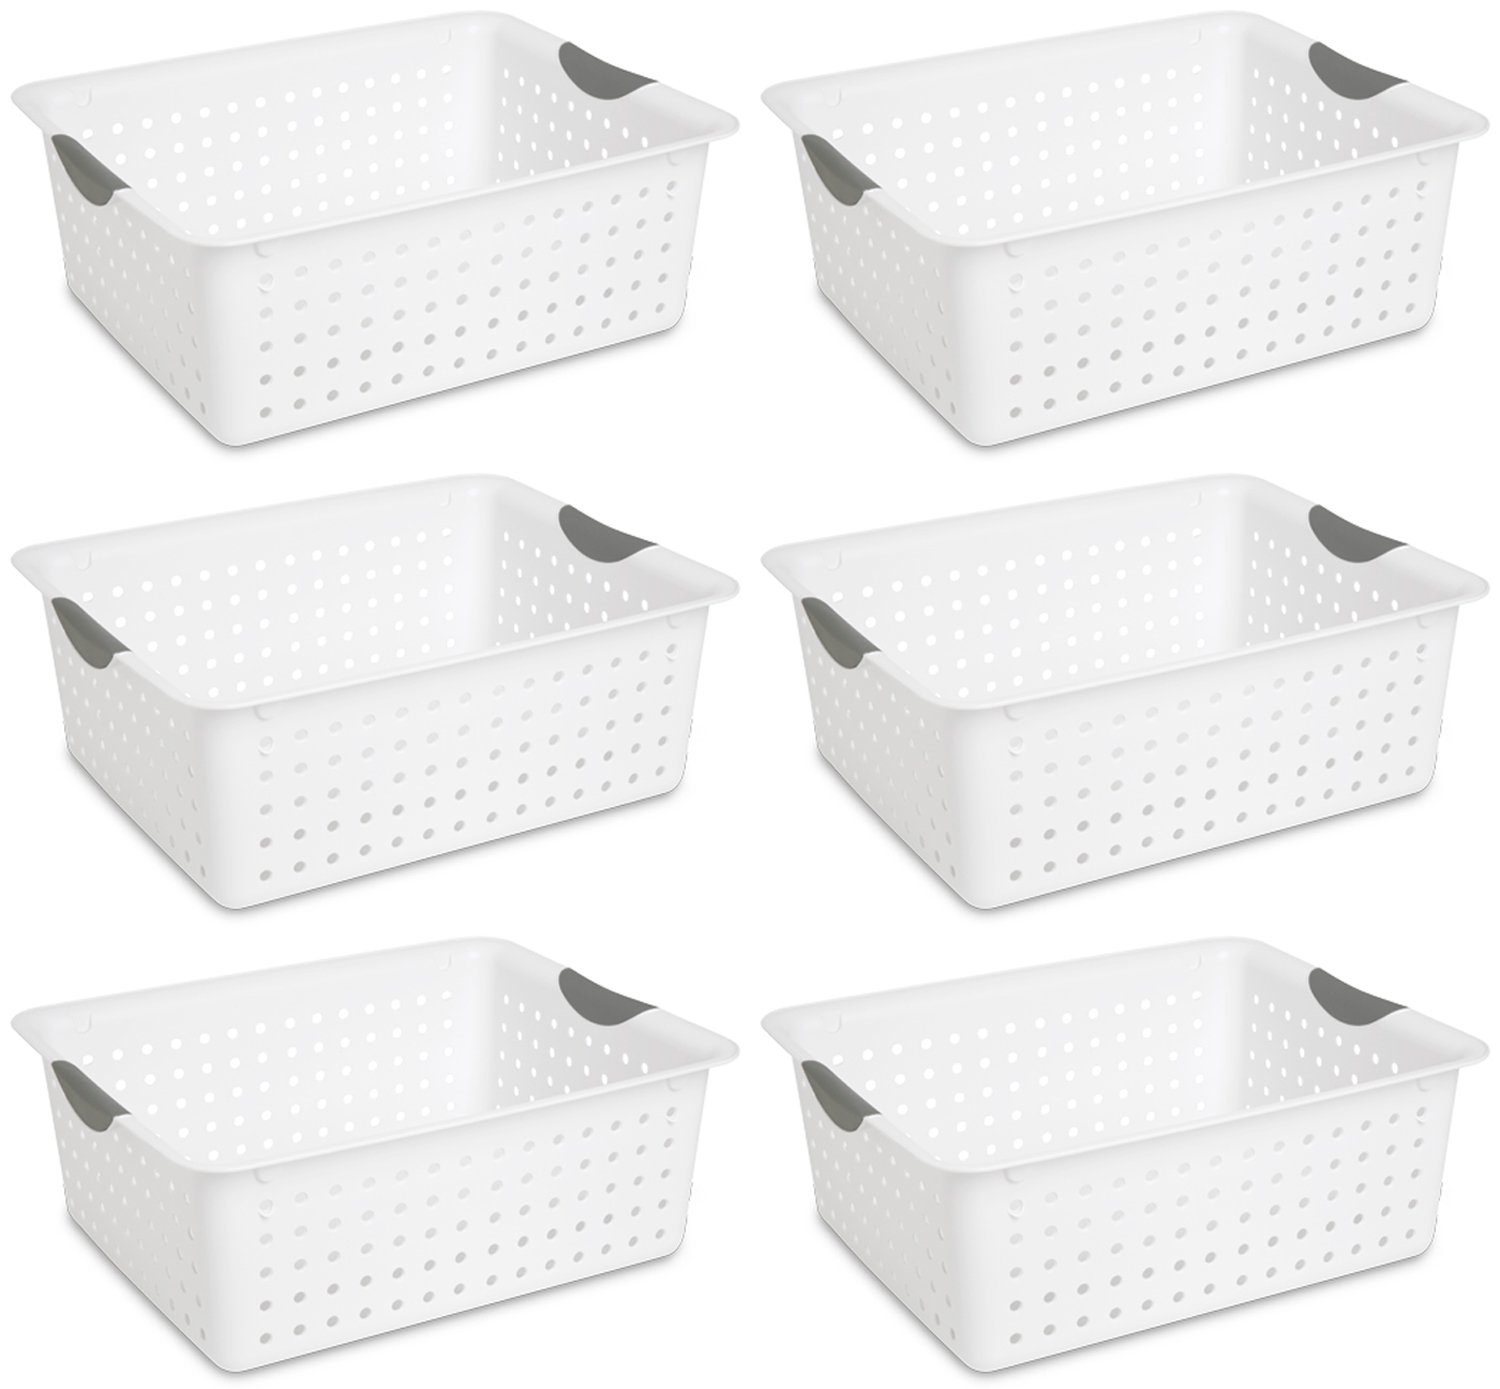 Sterilite Large Ultra Plastic Storage Organizer Baskets, White (6 Pack) 16268006